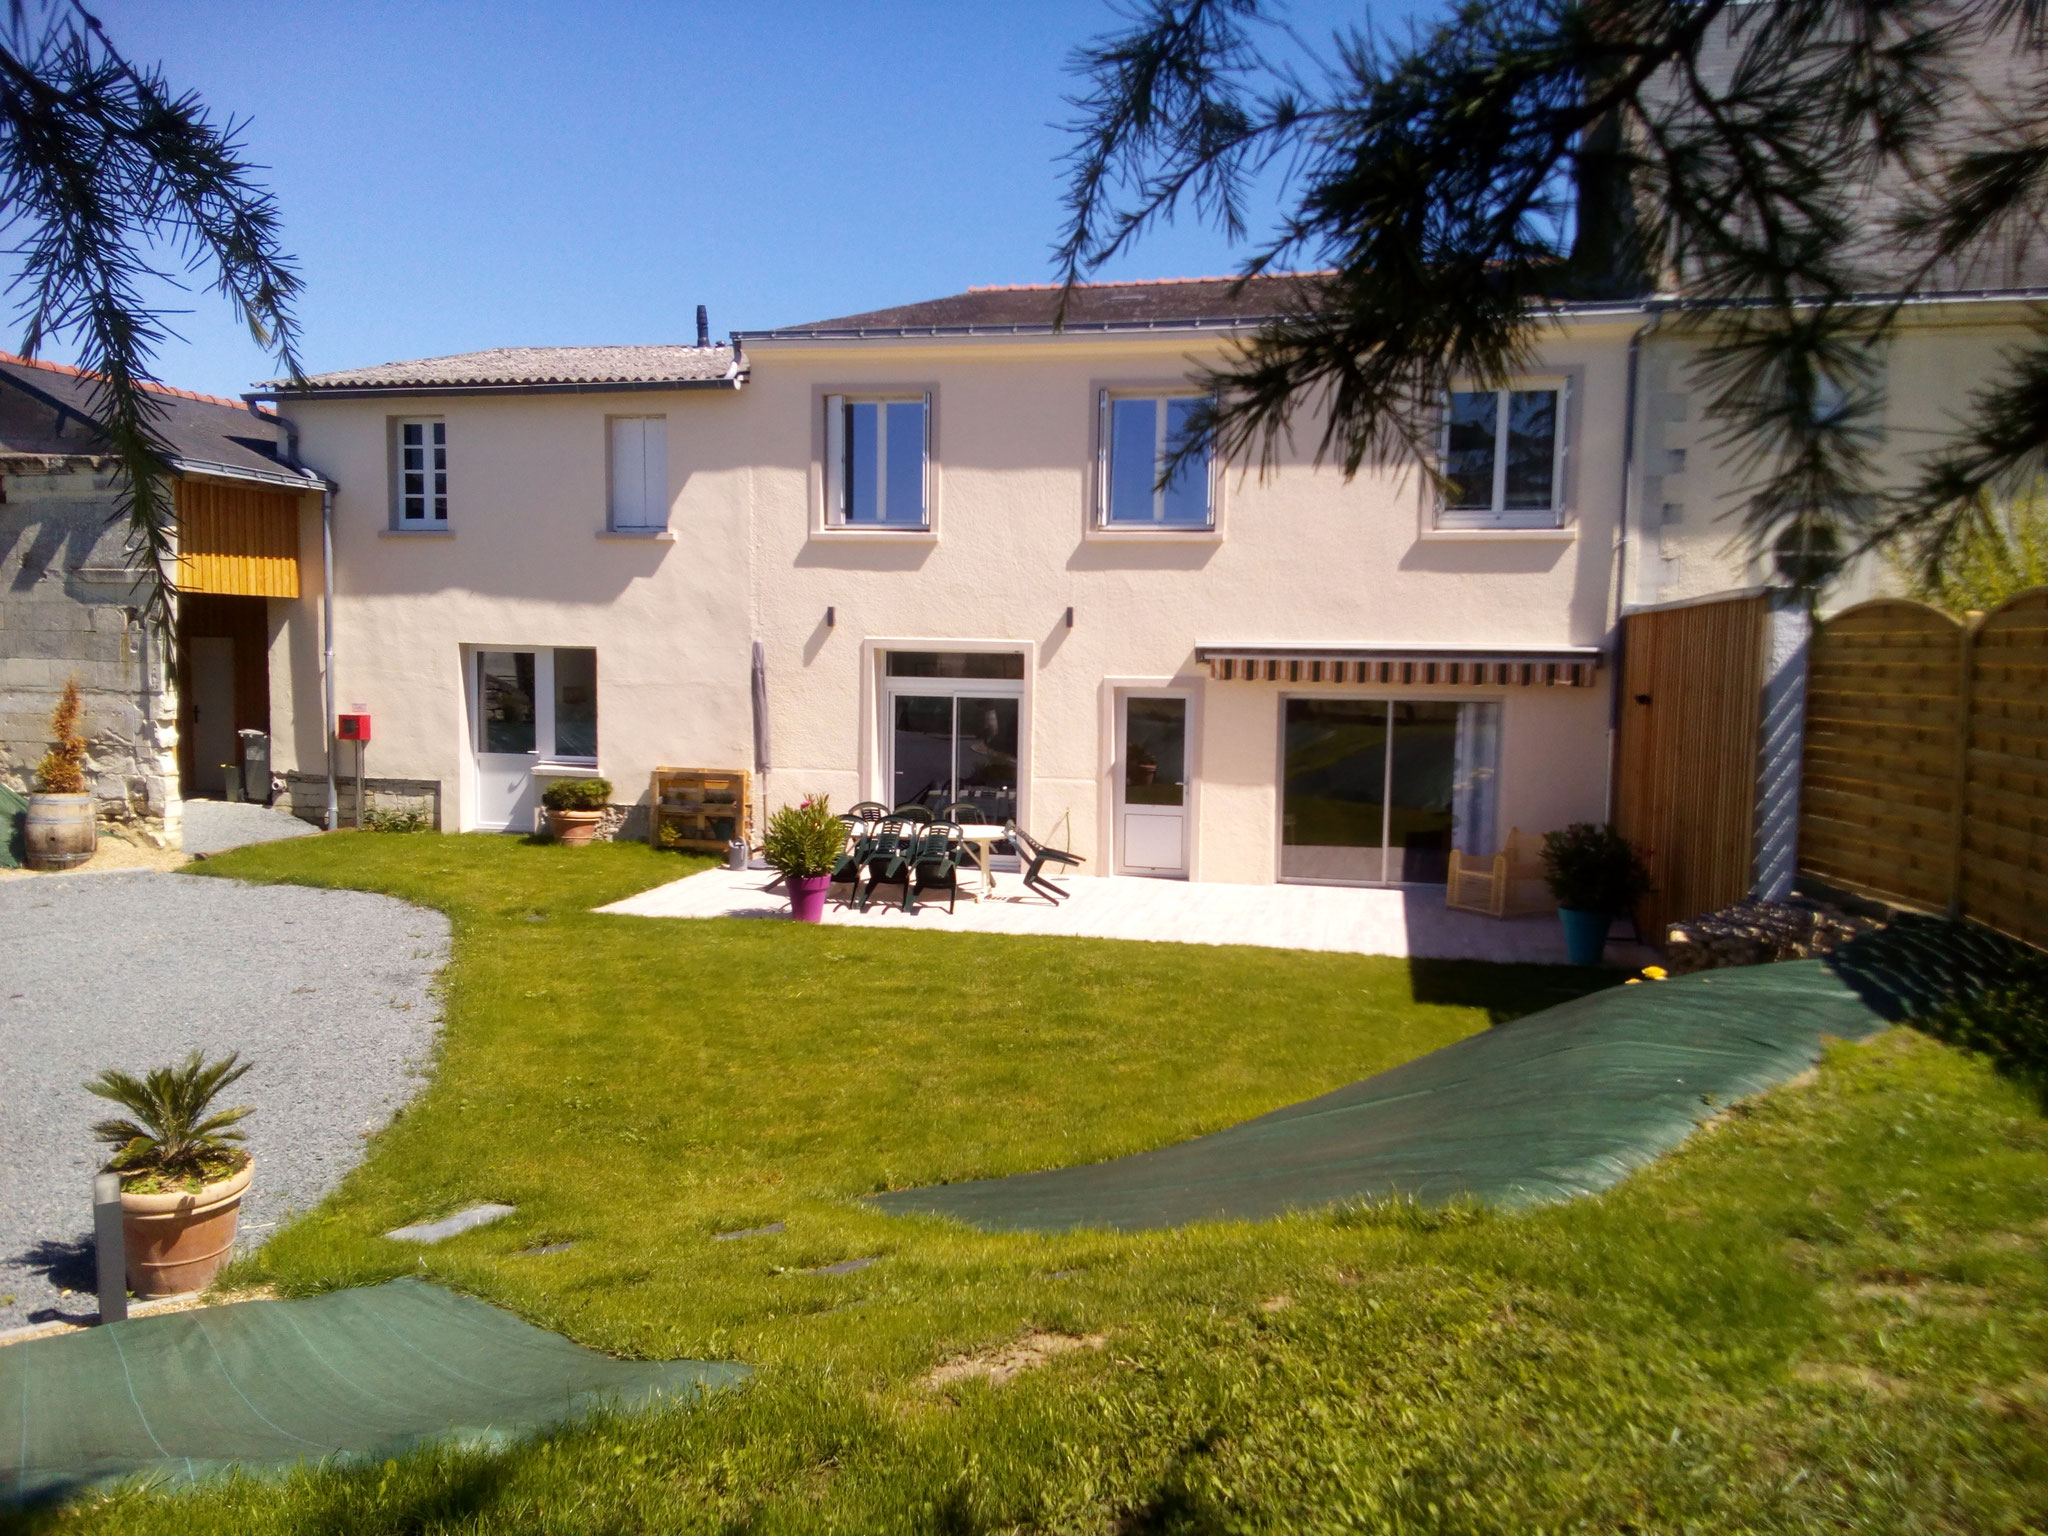 Self-catering holiday rental for 8-12 people